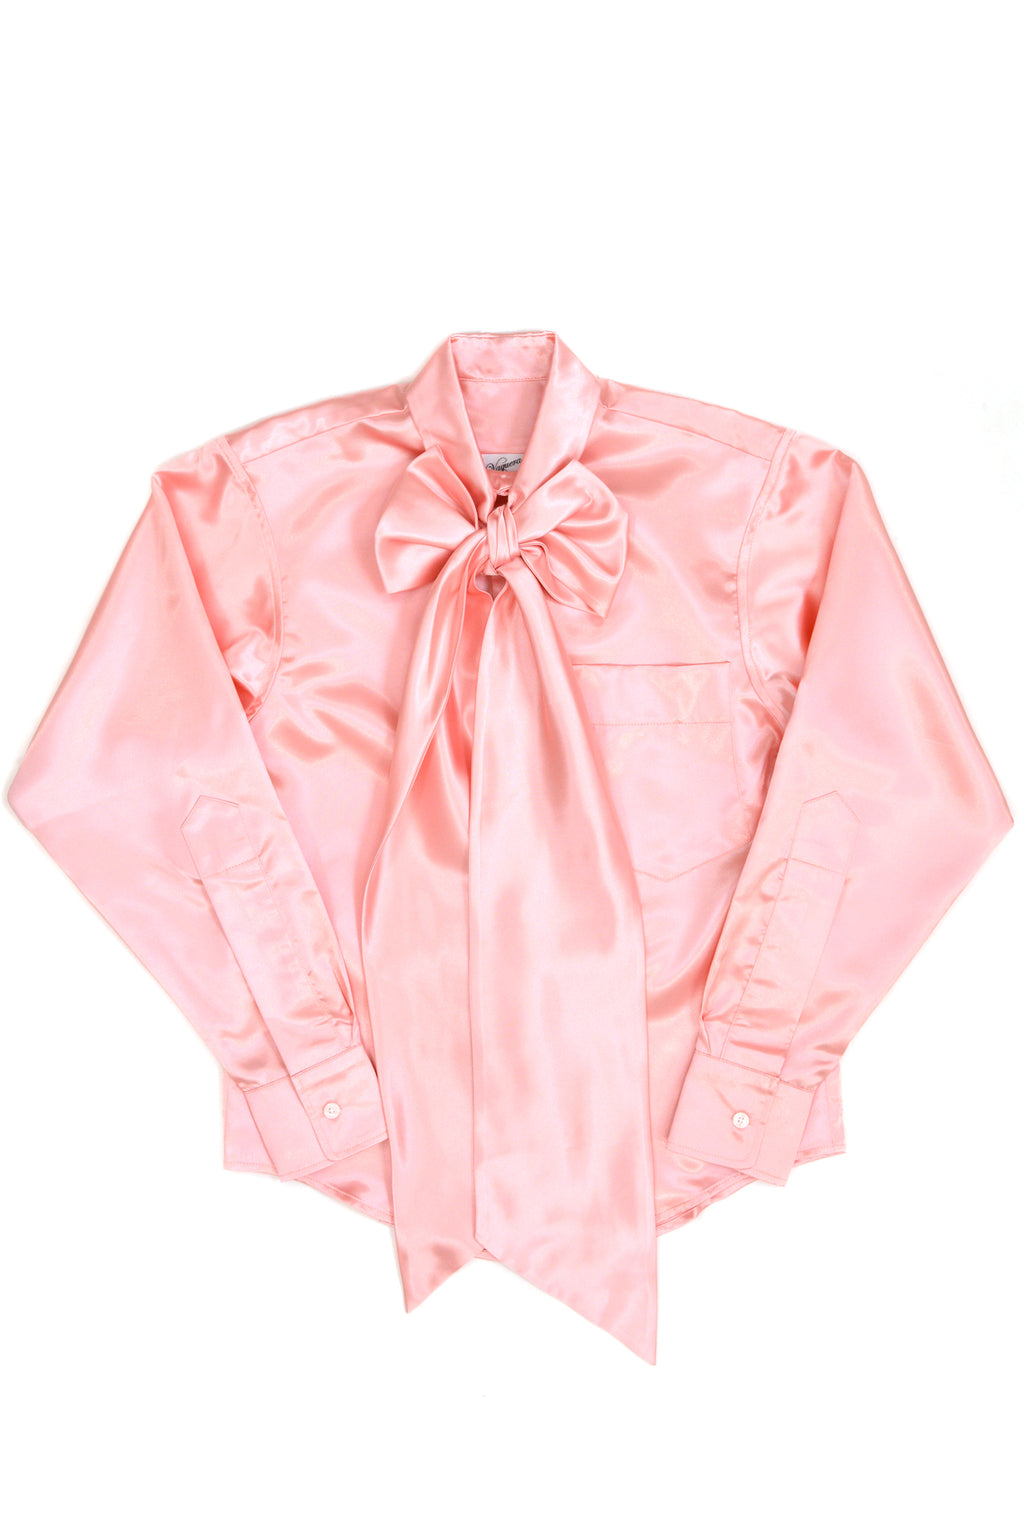 Vaquera Pink Satin Bow Button Down